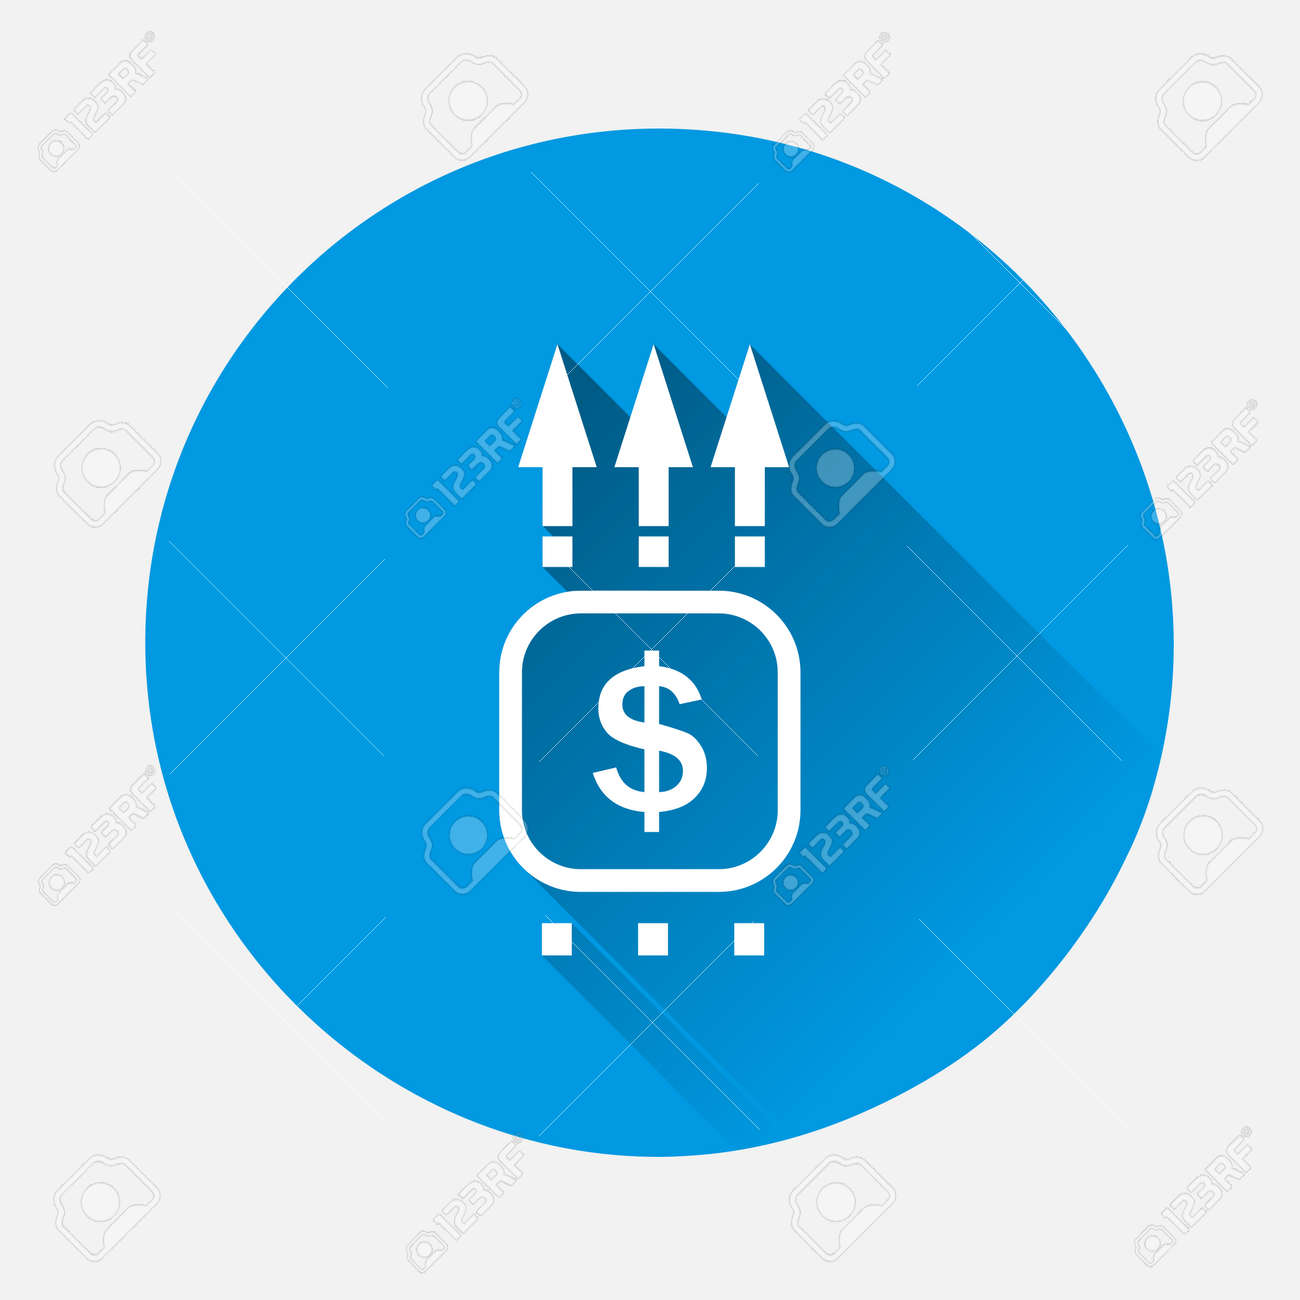 Vector pointer direction icon on blue background. Flat image with long shadow.Layers grouped for easy editing illustration. - 168890784